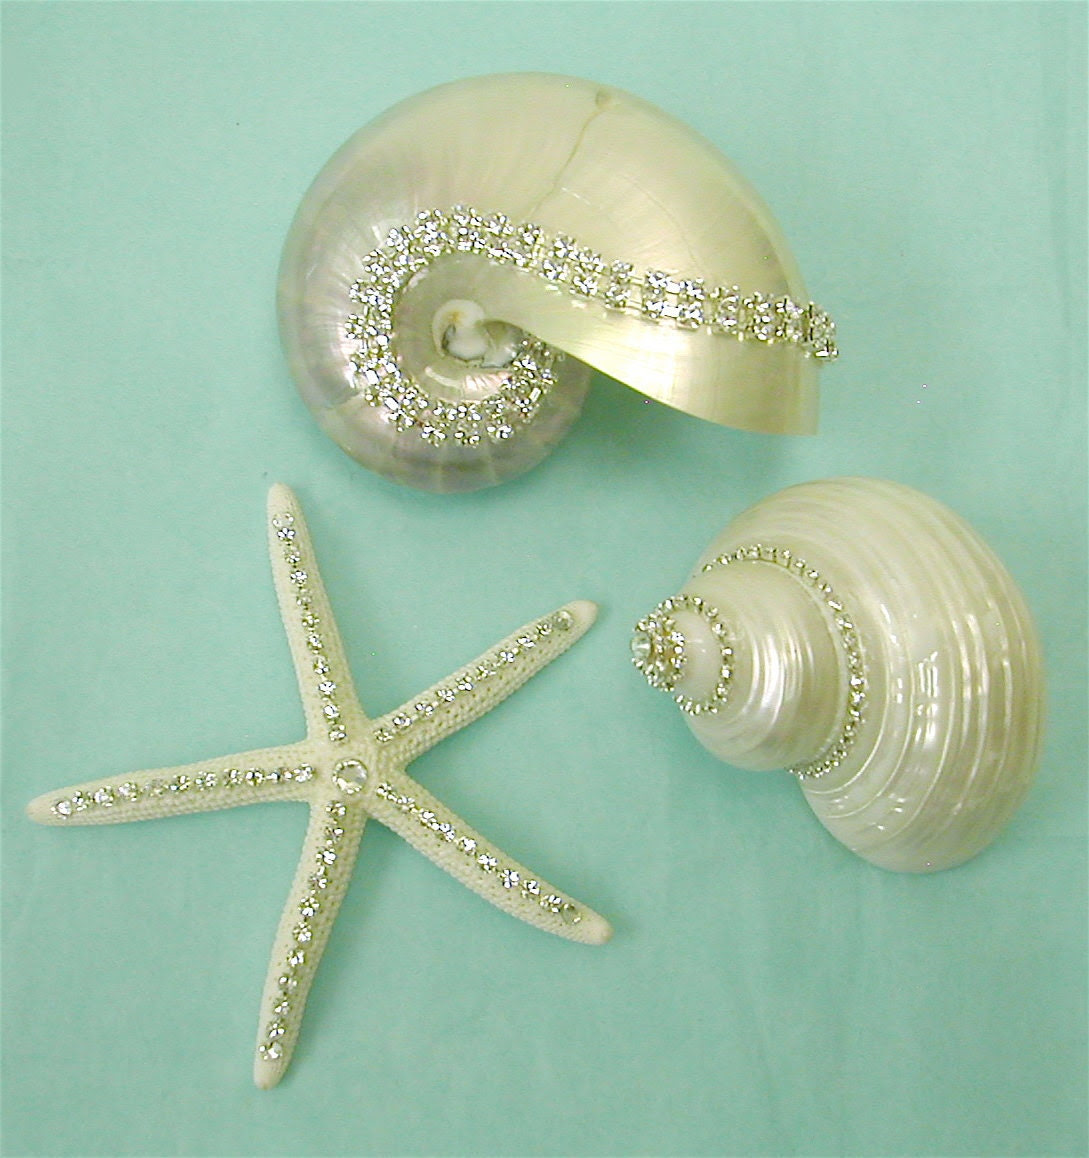 3 Crystal Studded Shells - Beach Decor Display